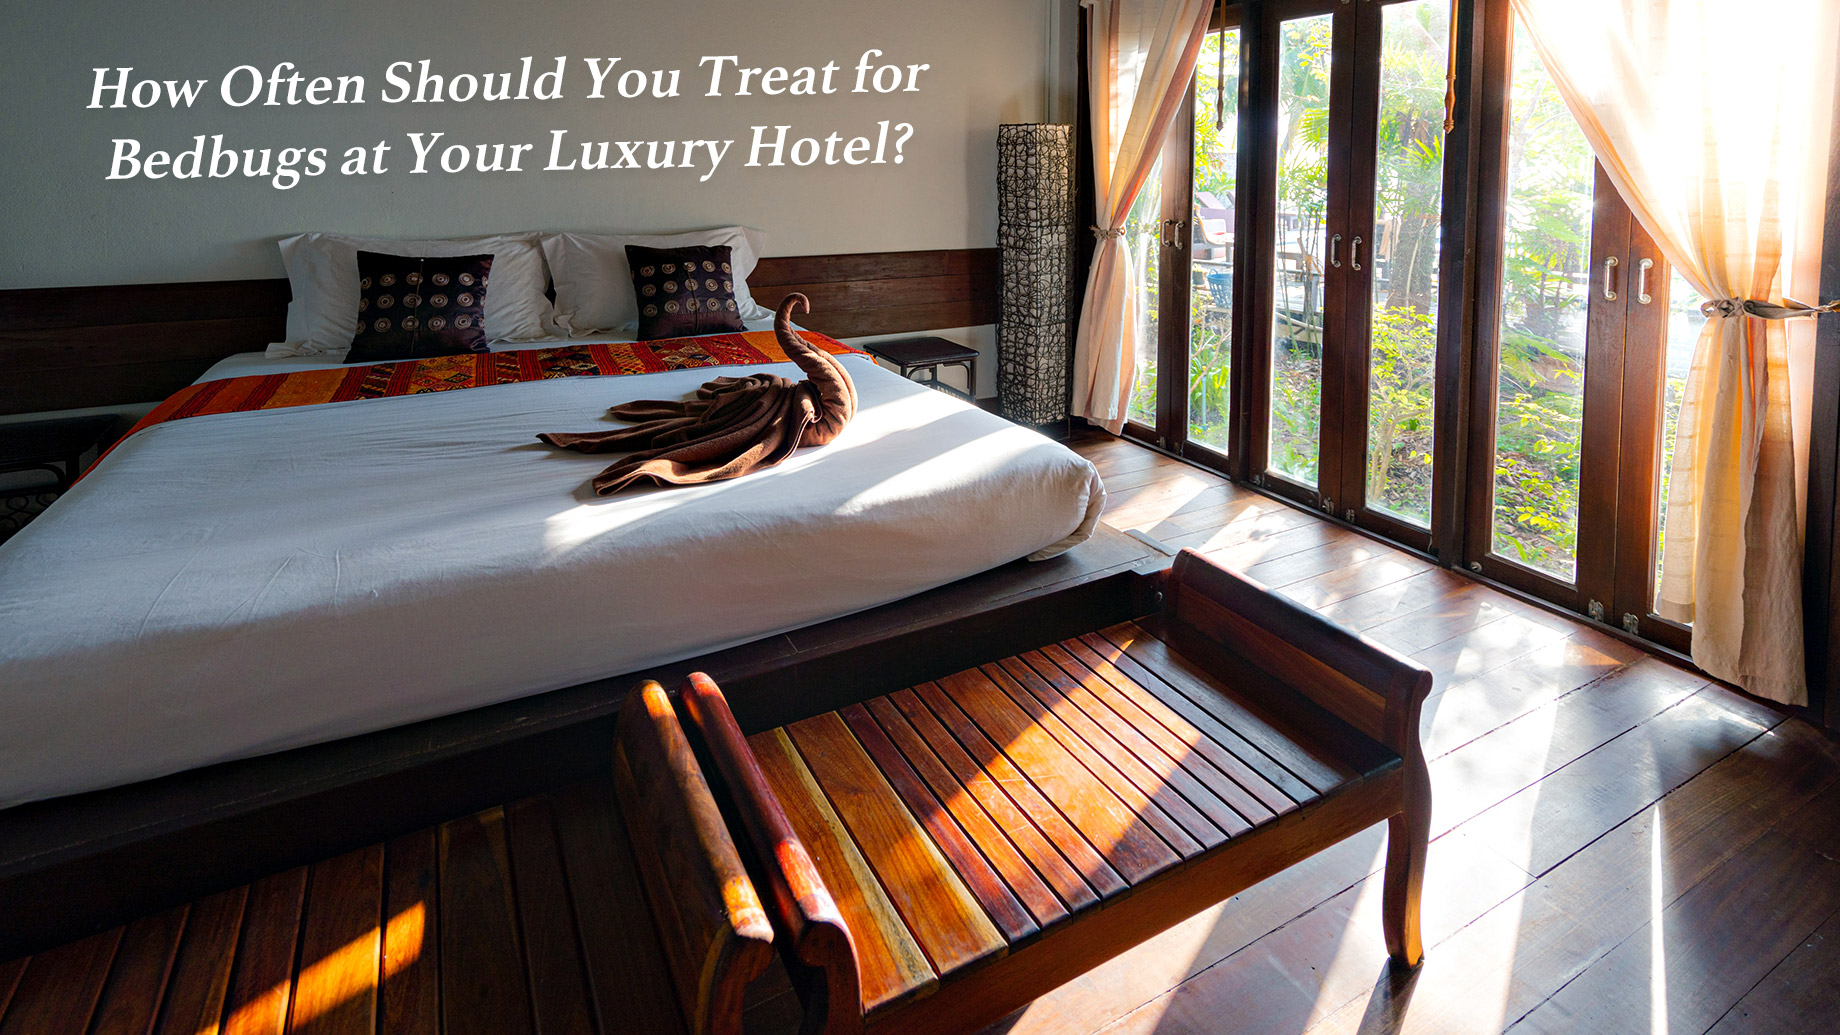 How Often Should You Treat for Bedbugs at Your Luxury Hotel?